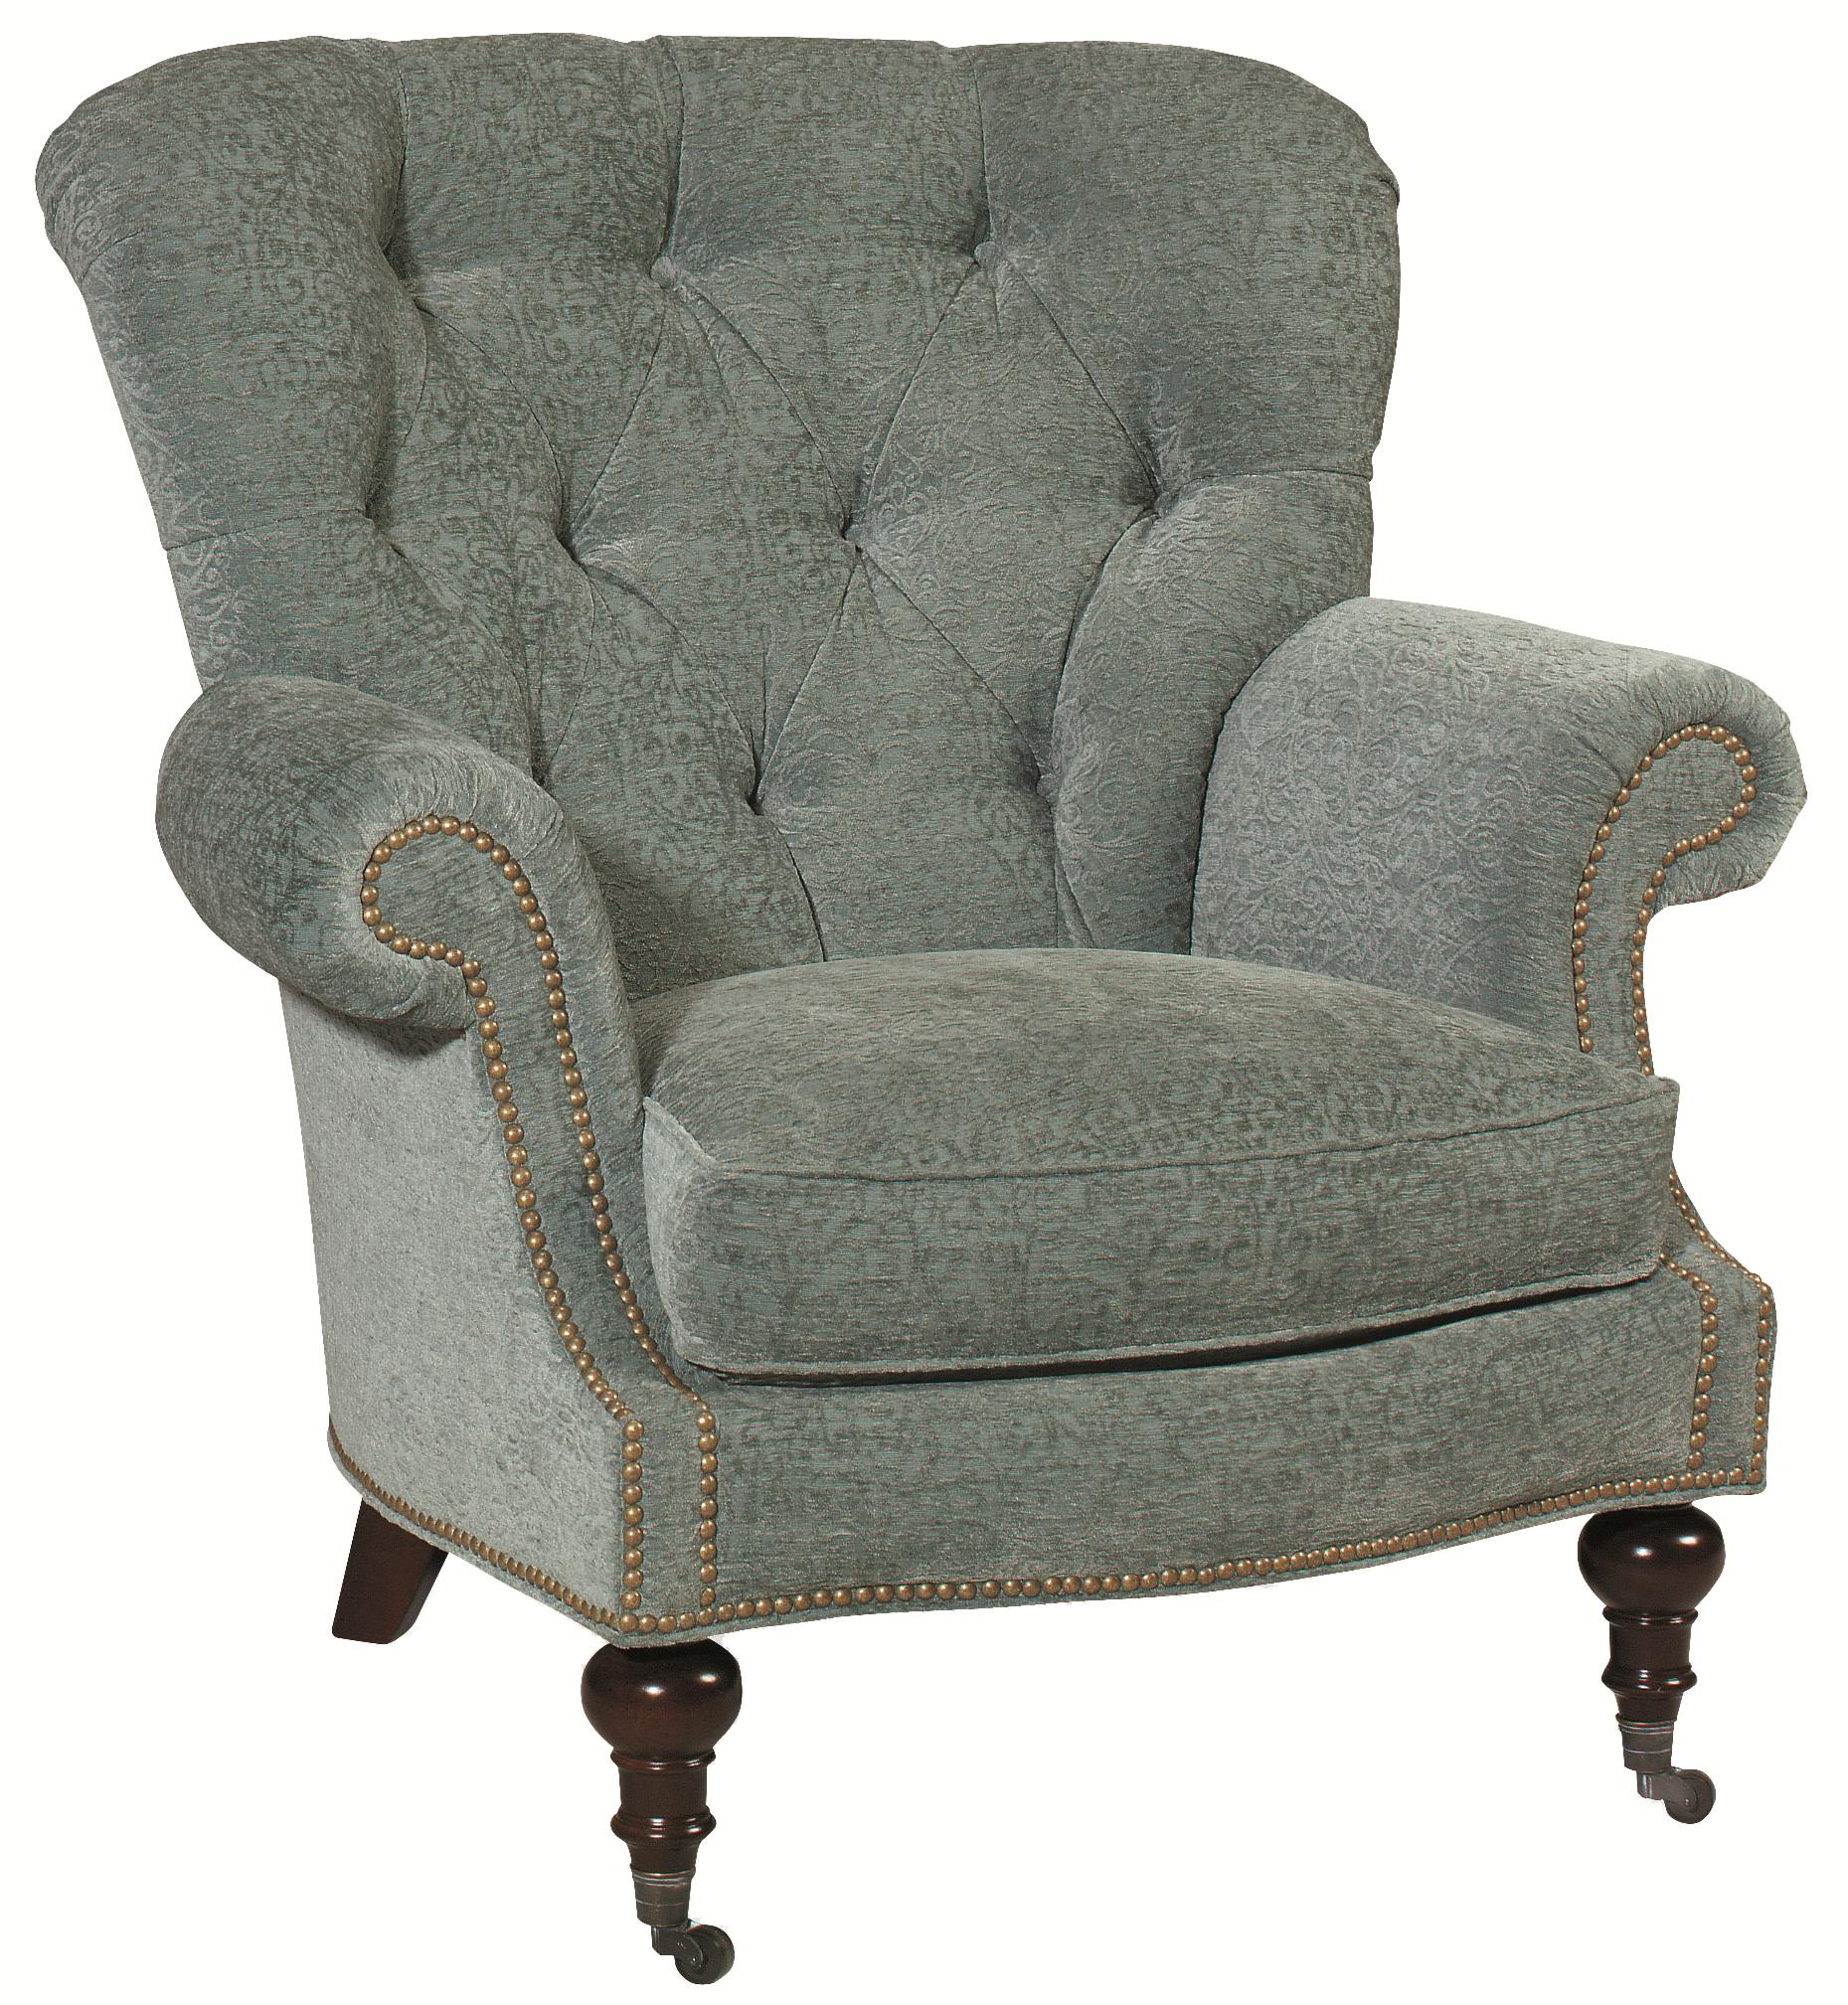 Thomasville® Upholstered Chairs And Ottomans Vienna Tufted Back Chair With  Nail Head Trim   Sprintz Furniture   Wing Chairs Nashville, Franklin, ...